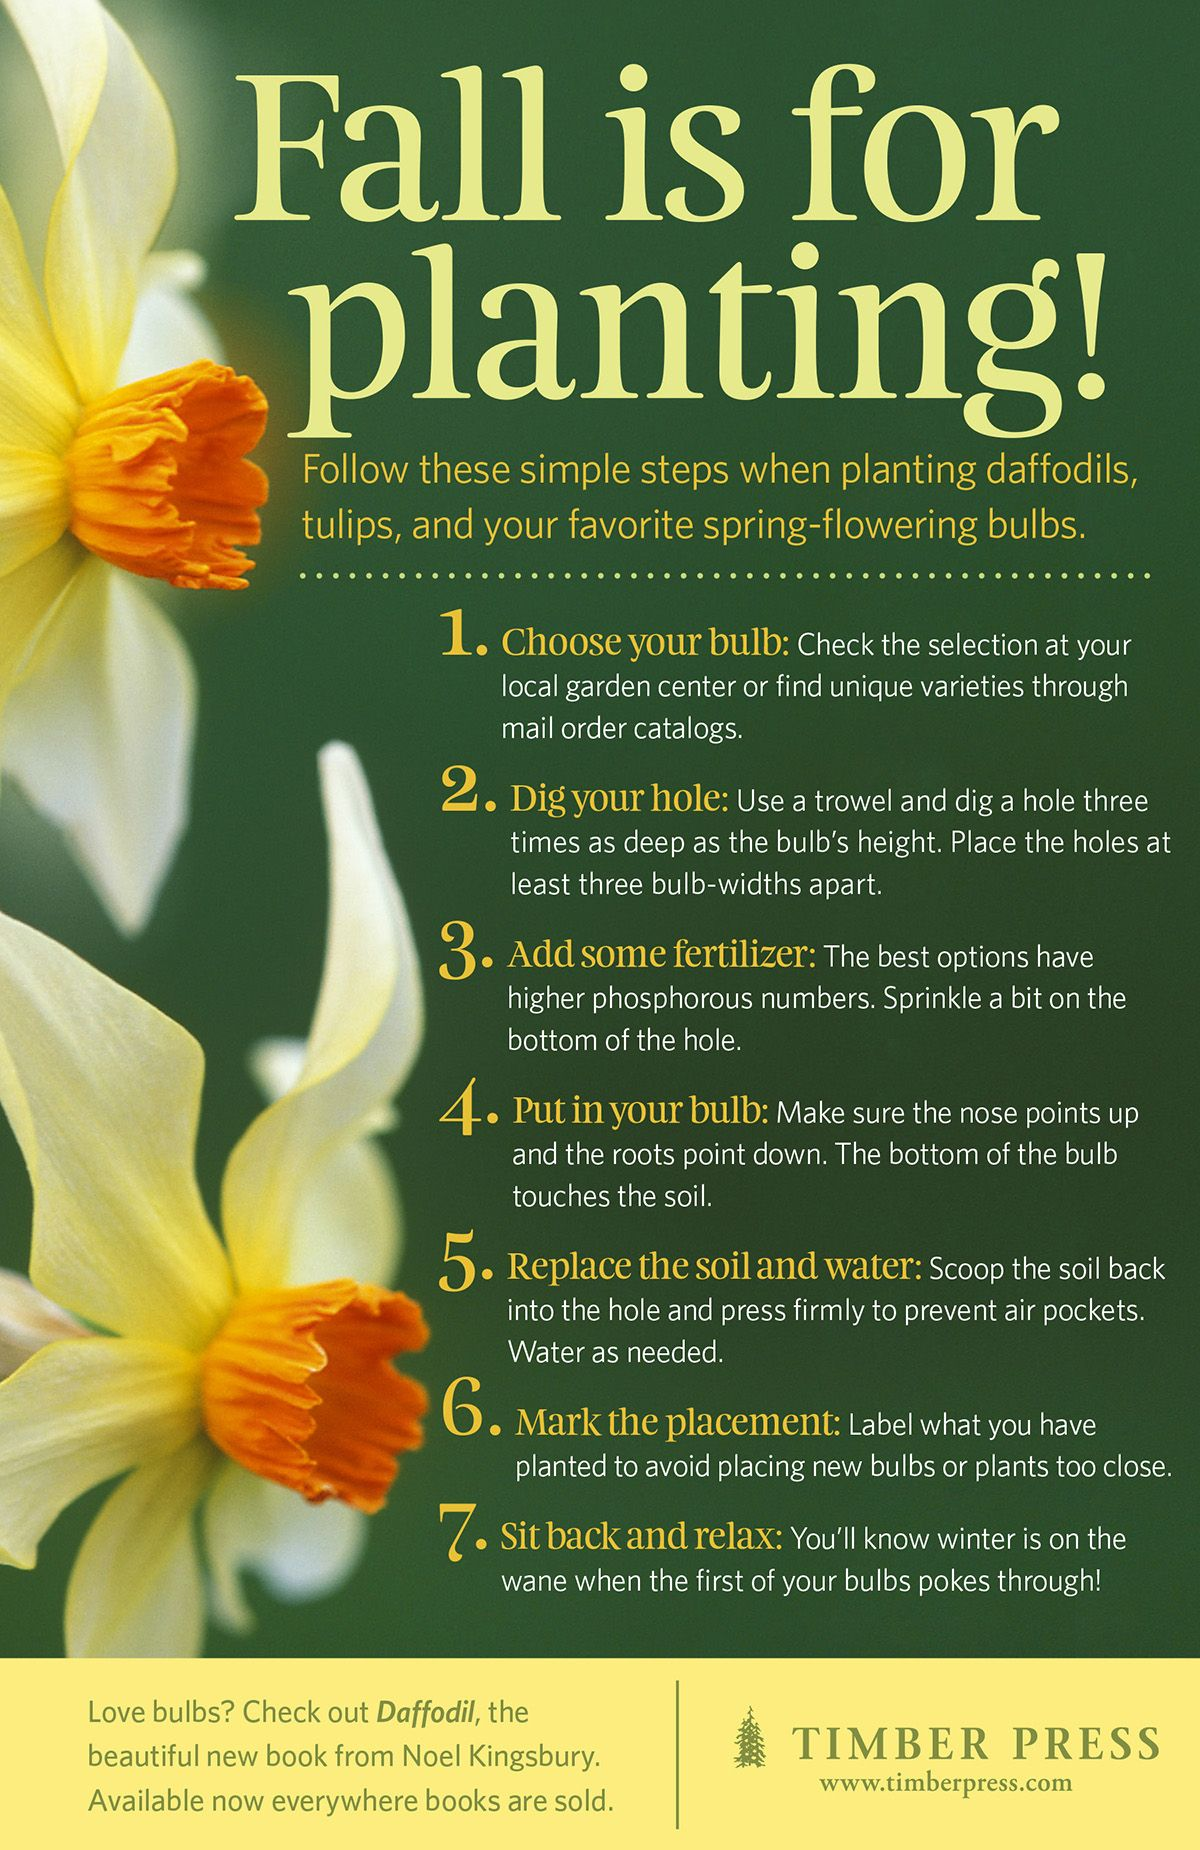 7 Simple Steps To Planting Your Favorite Spring Flowering